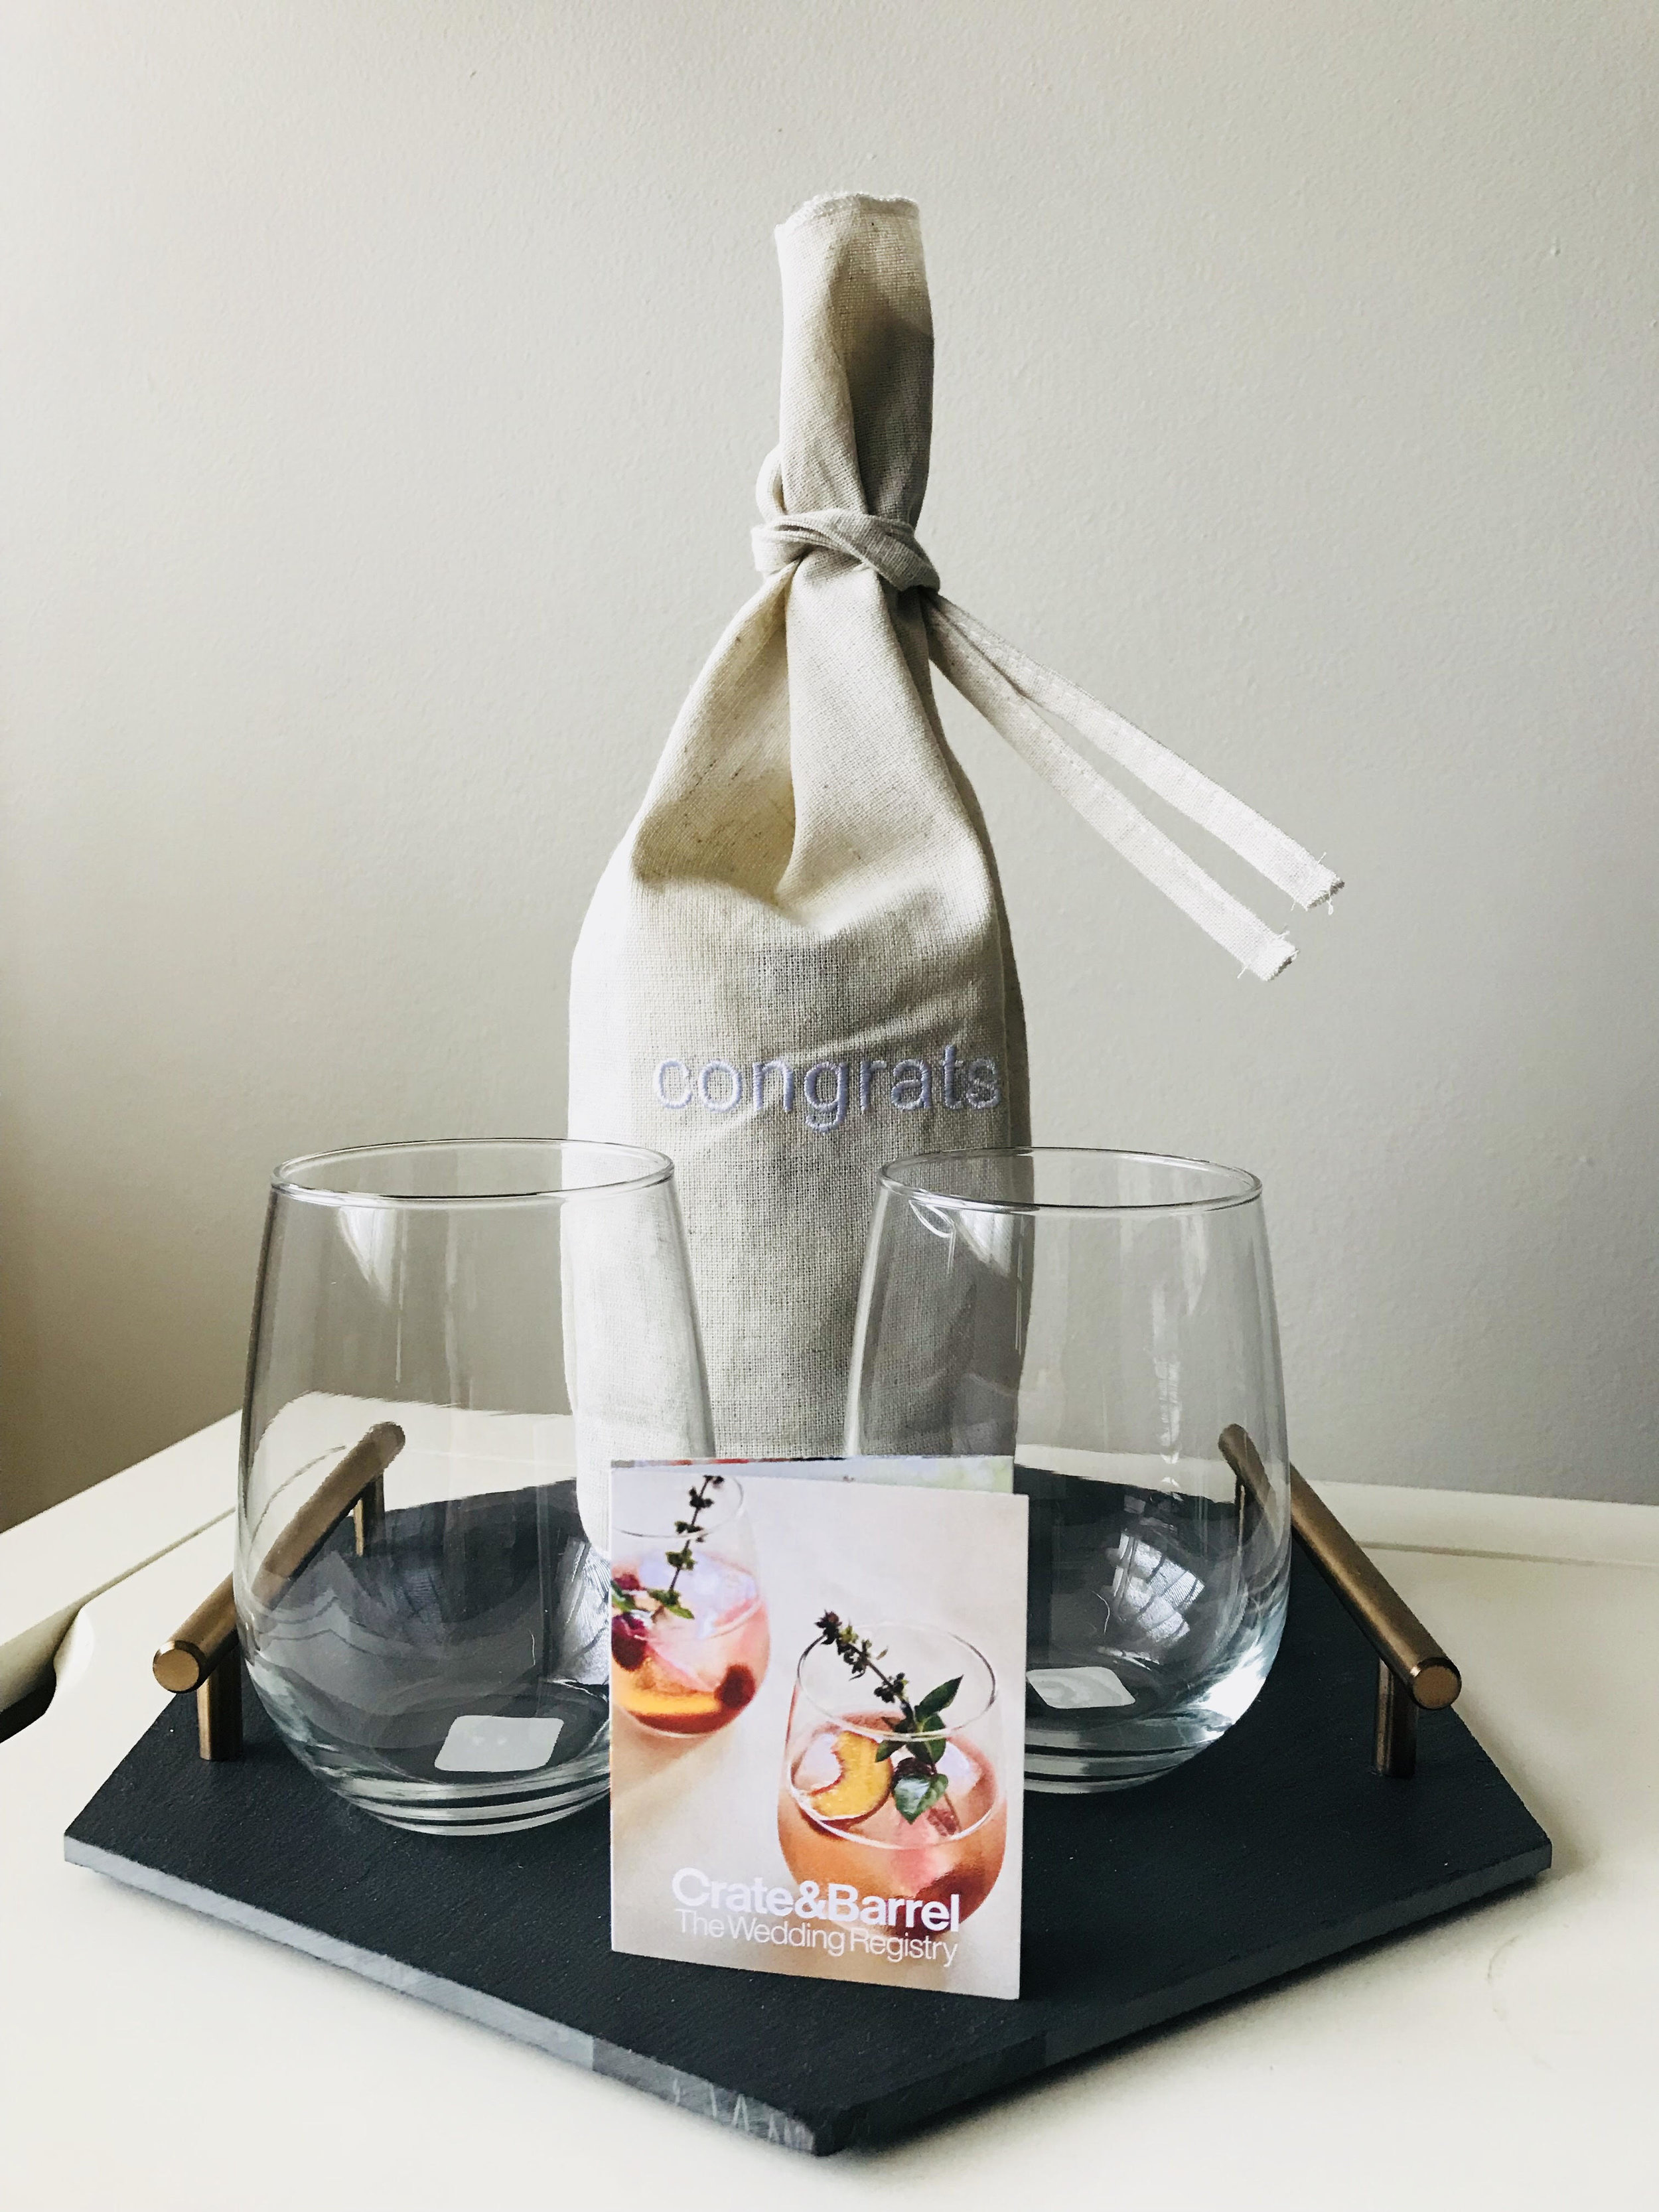 1. Wedding Registry Event - Adam & I went to the Crate & Barrel Wedding Registry Event - a free event where store associates help you choose practical items for your registry. They even gave each couple a gift of two free C&B stemless wine glasses as a thanks for coming!